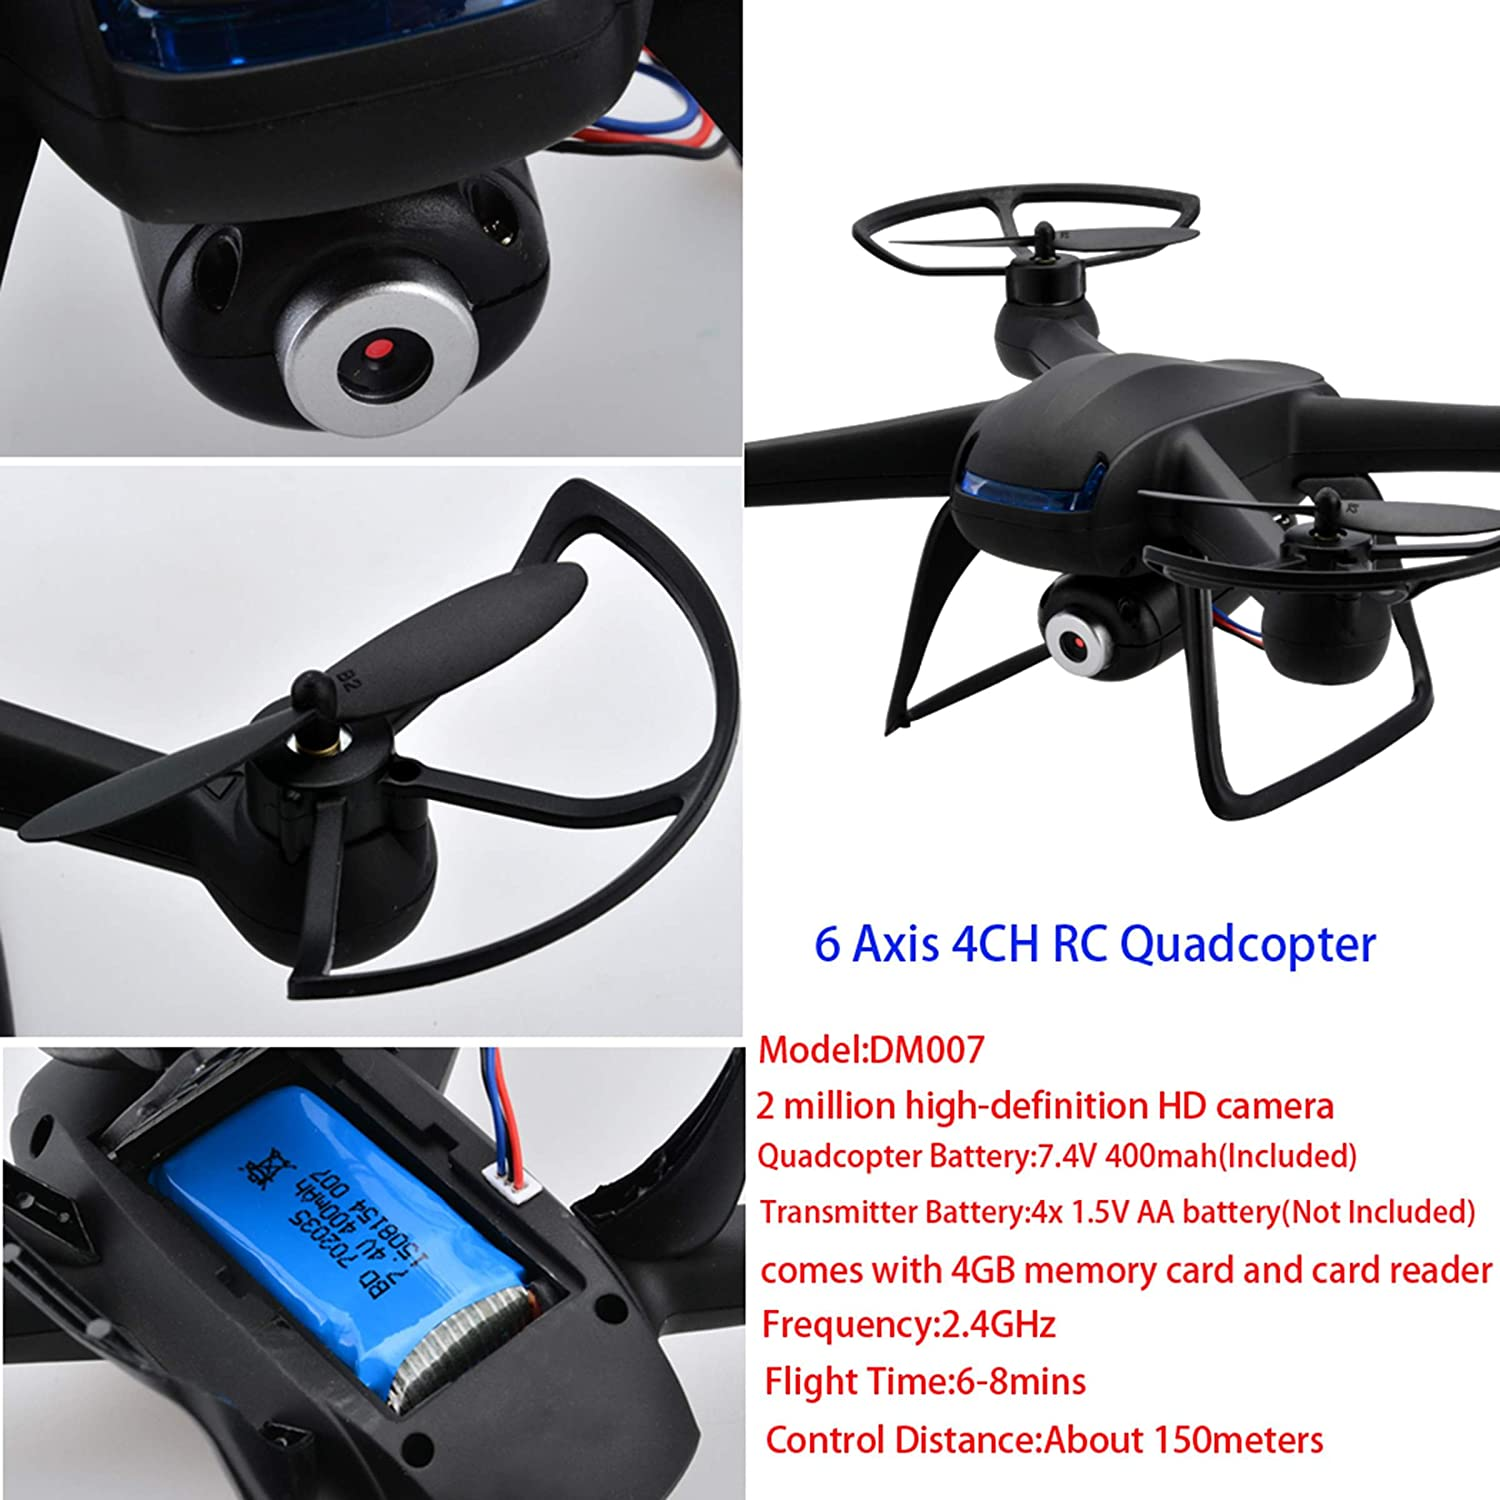 CRAVOG DM007 2.4GHz 4CH RC Quadcopter 6 Axis Gyro Explorer RC Drone With  2MP HD Camera Black: Amazon.co.uk: Toys & Games